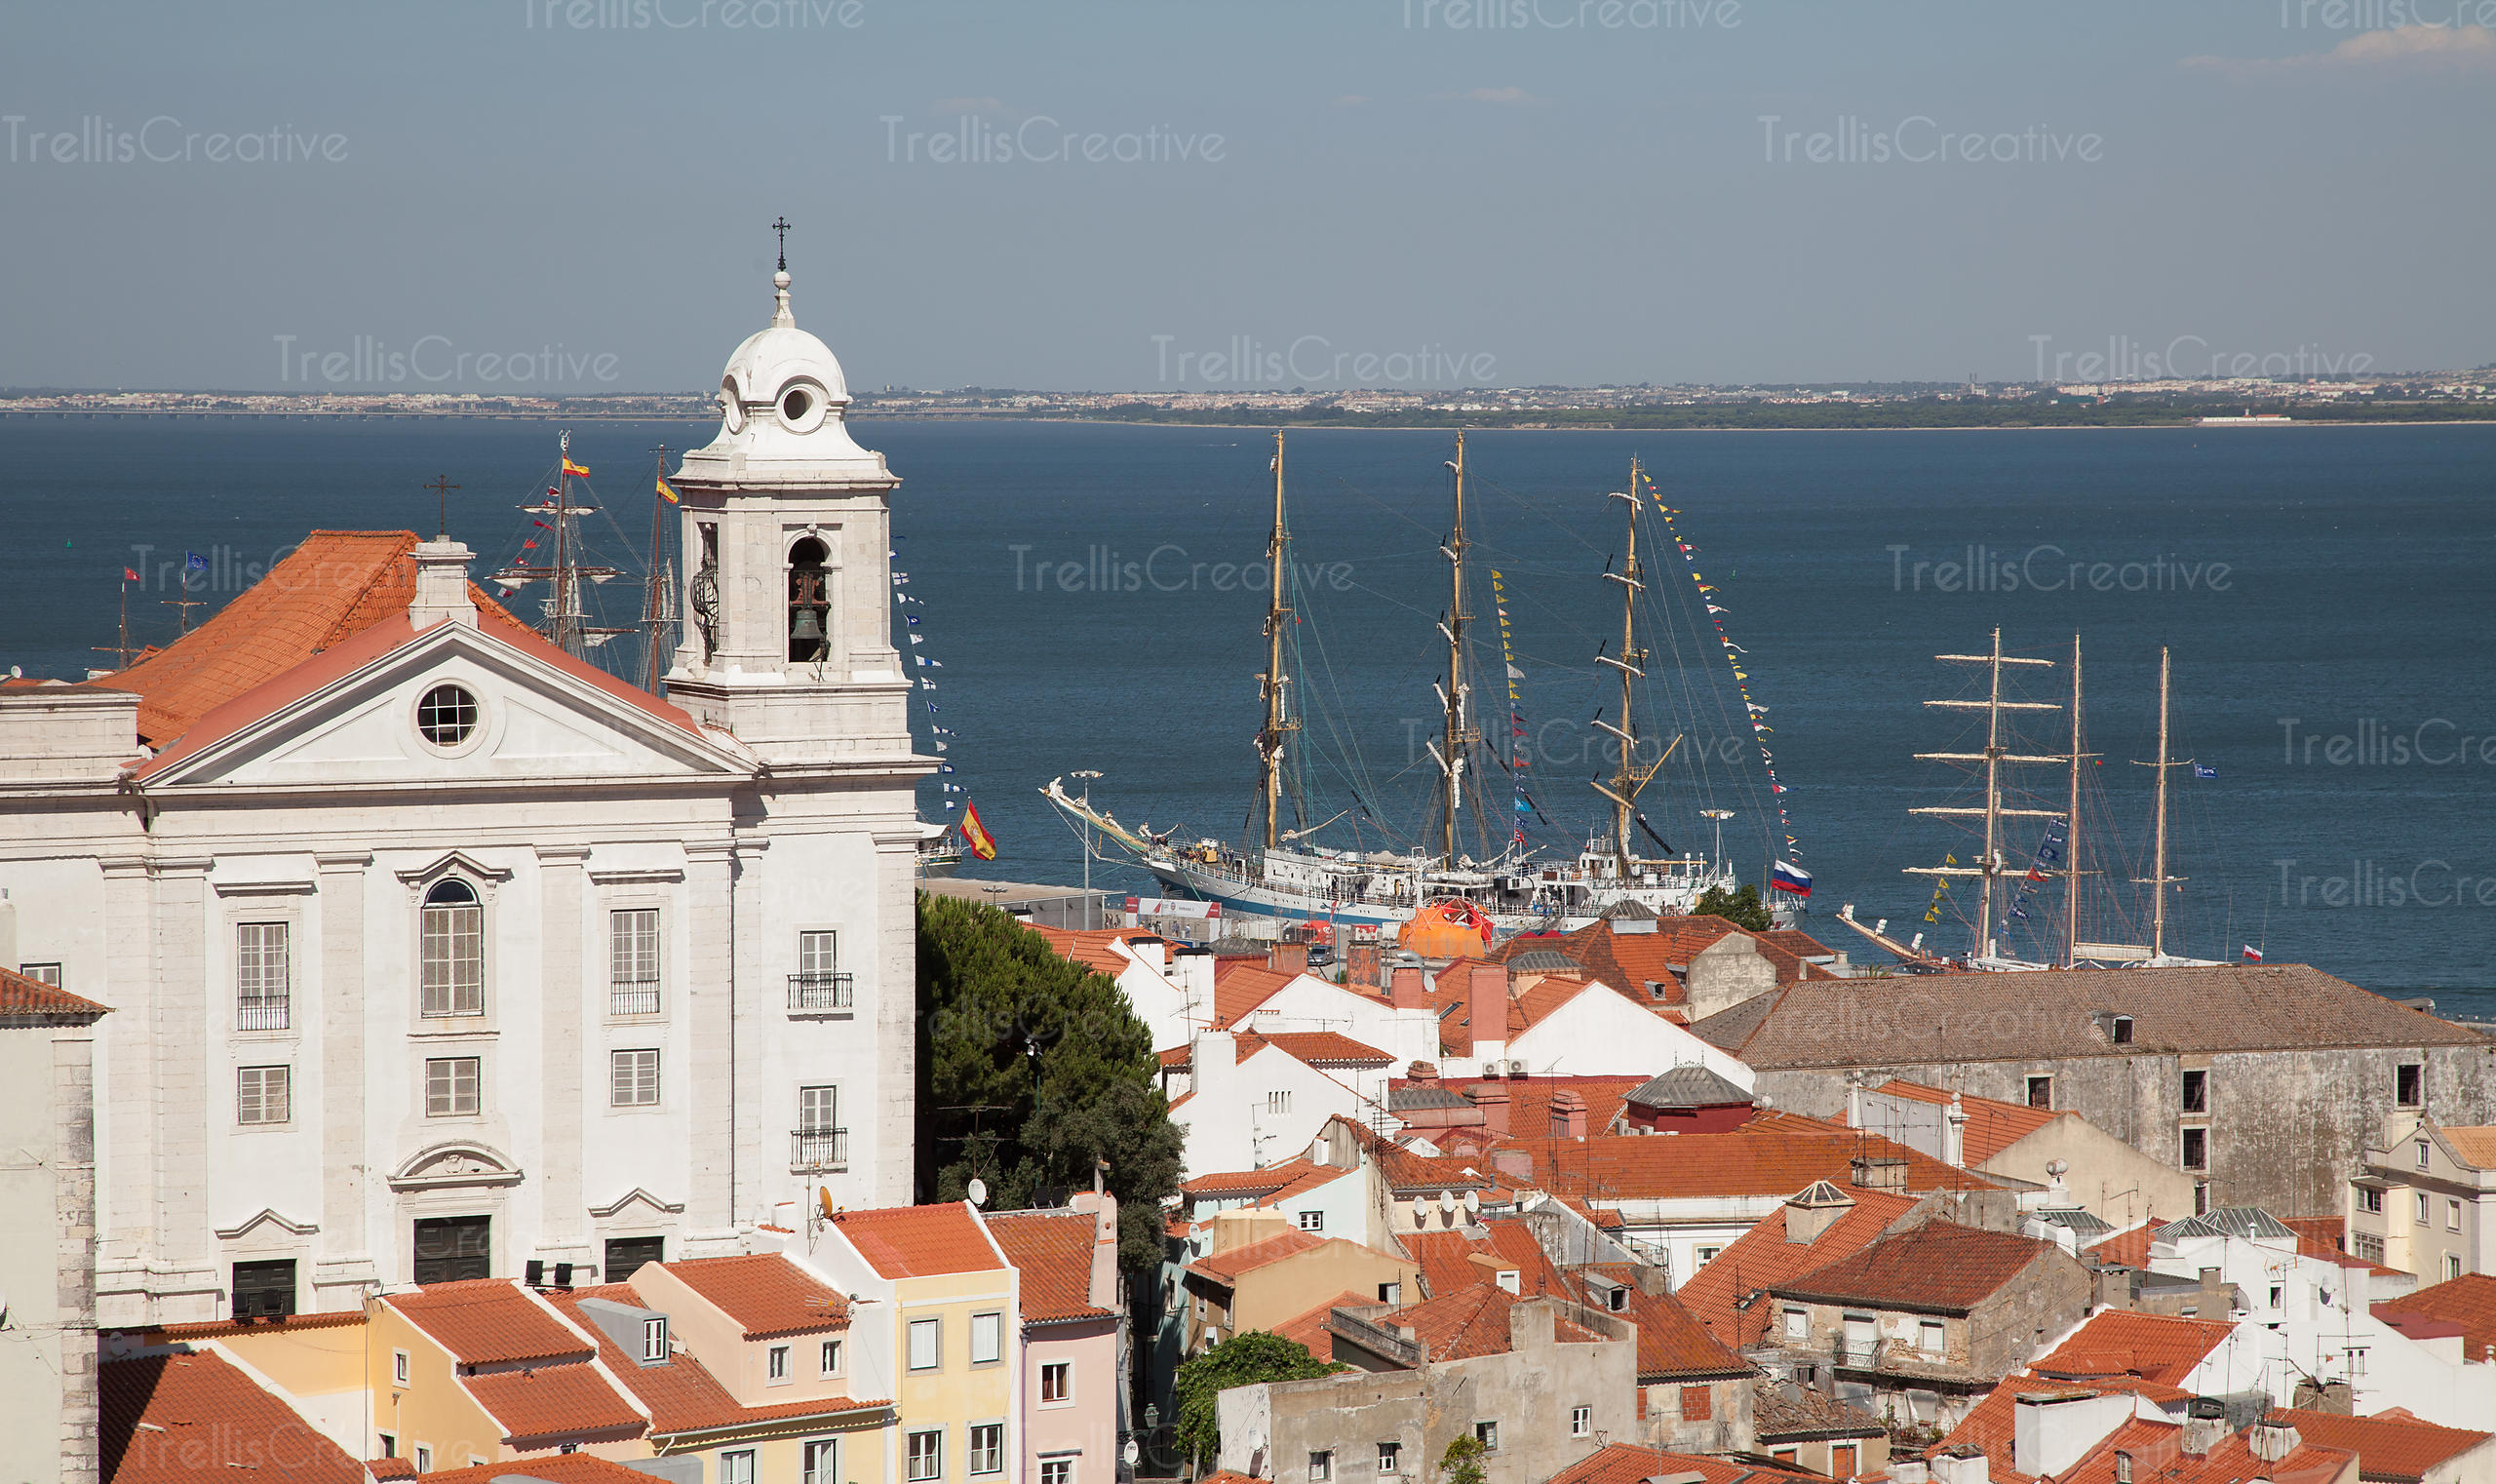 The port town of Lisbon, Portugal